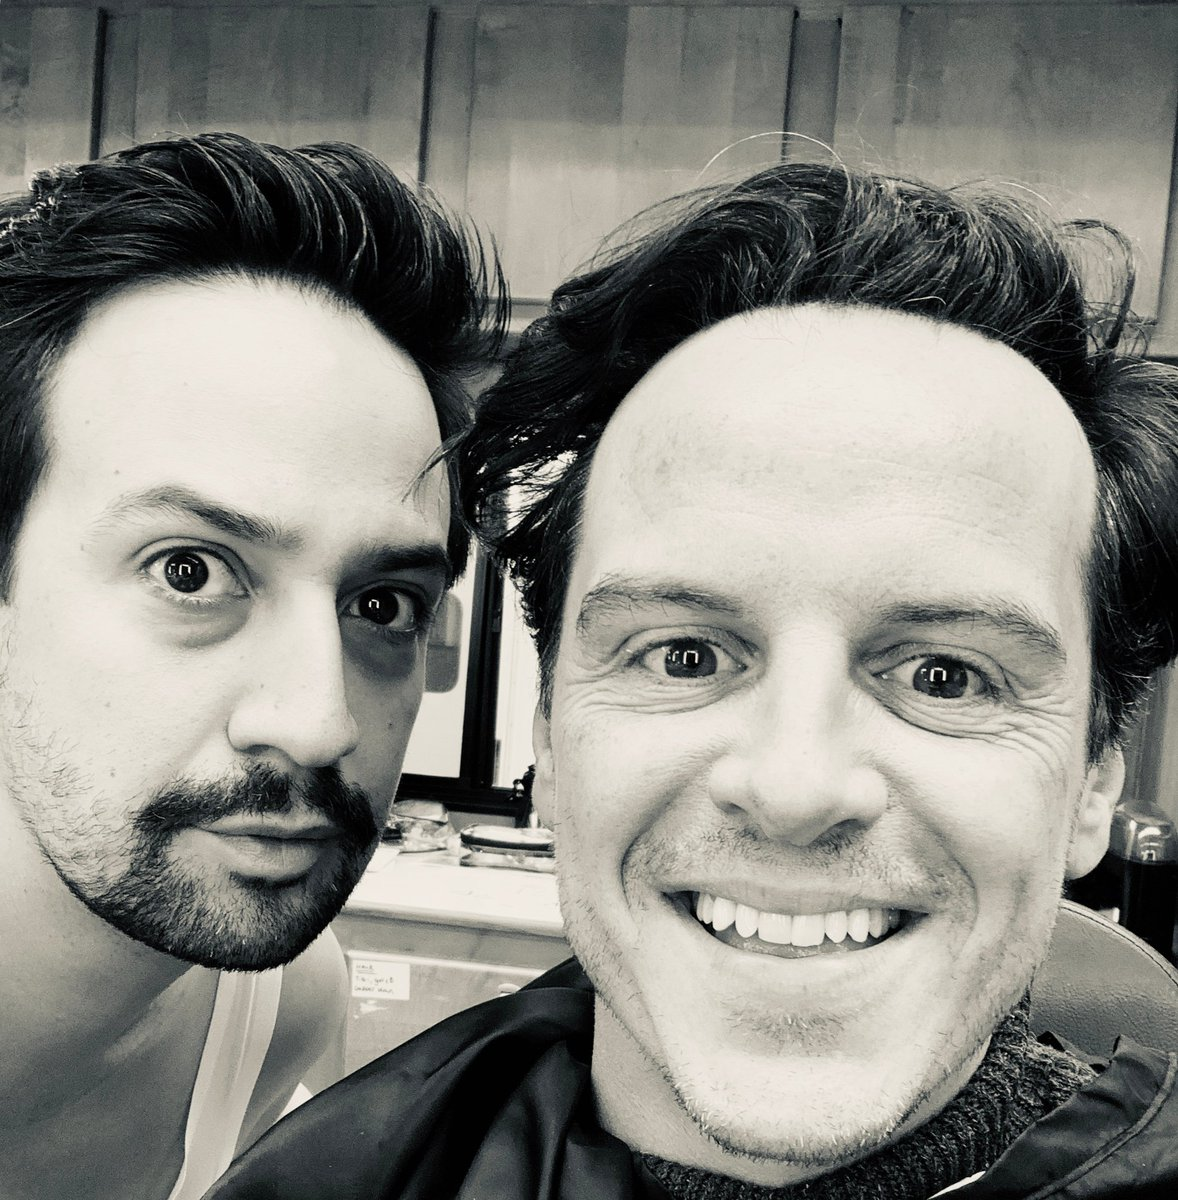 "So I have summoned you here, and you are to fly me northwards"" When Lee Scoresby met Jopari. @Lin_Manuel #AndrewScott #BehindTheScenes #HisDarkMaterials"